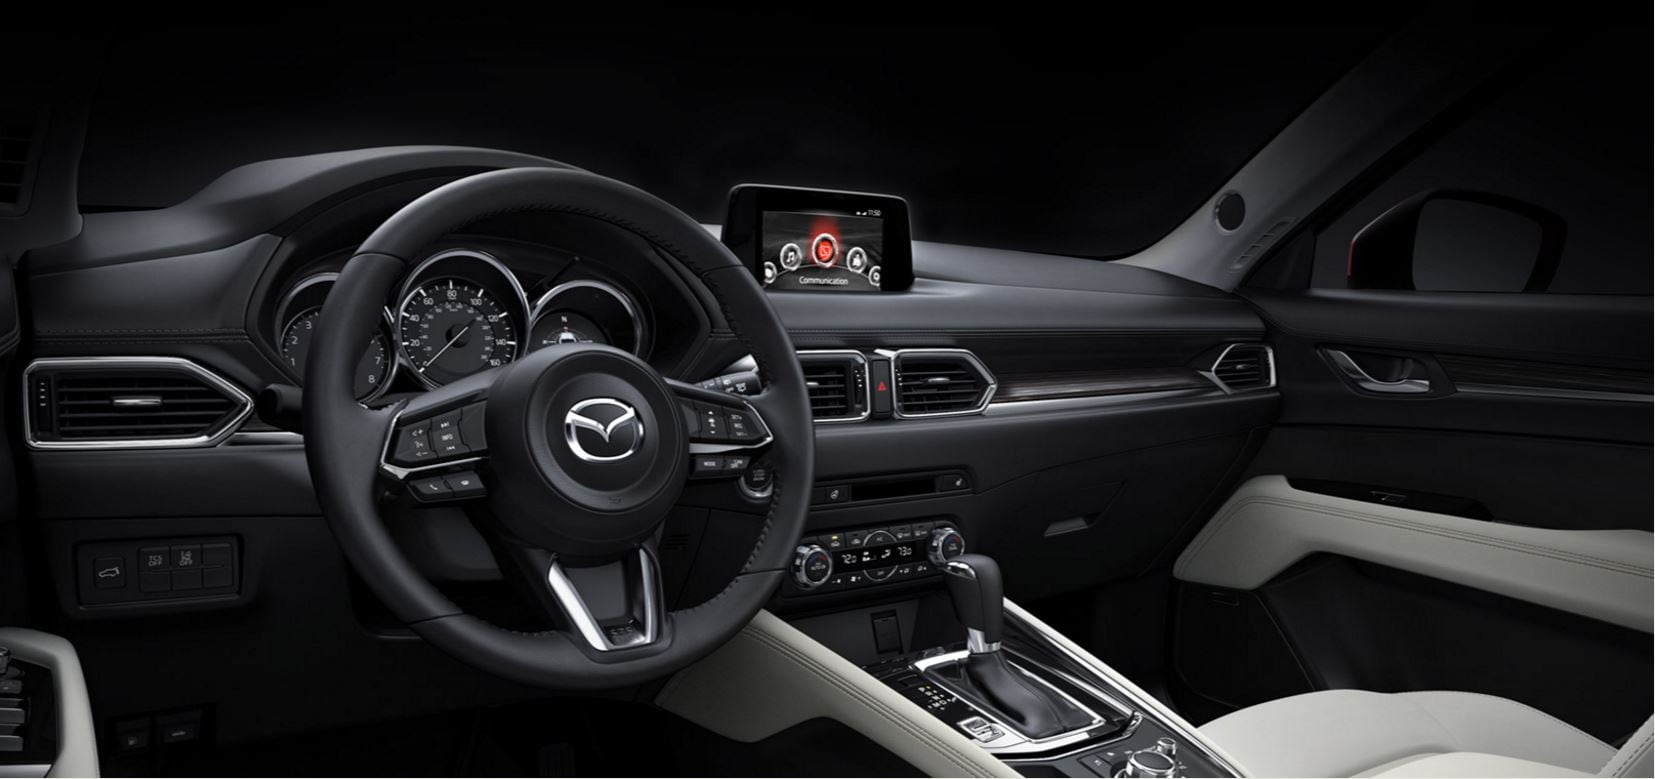 Interior of the all-new Mazda CX-5, available in Southern California